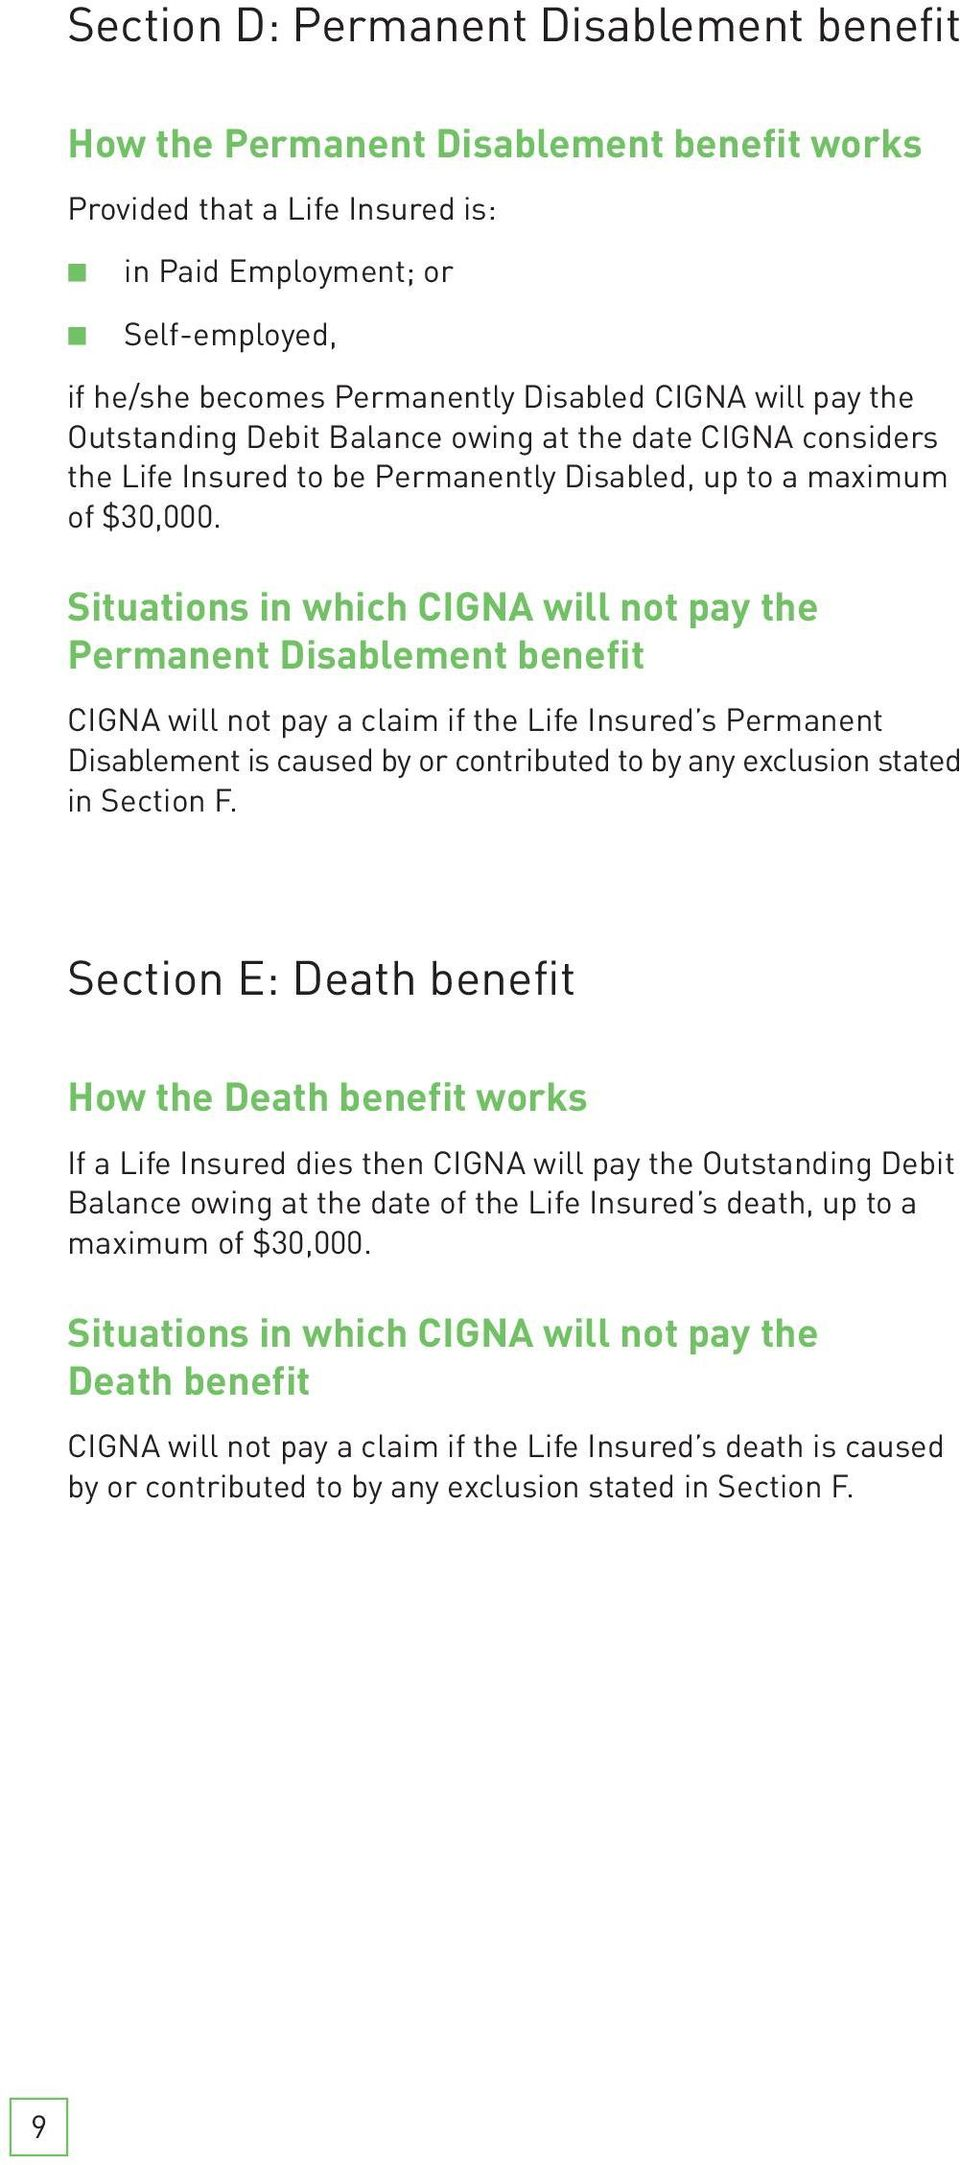 Situations in which CIGNA will not pay the Permanent Disablement benefit CIGNA will not pay a claim if the Life Insured s Permanent Disablement is caused by or contributed to by any exclusion stated